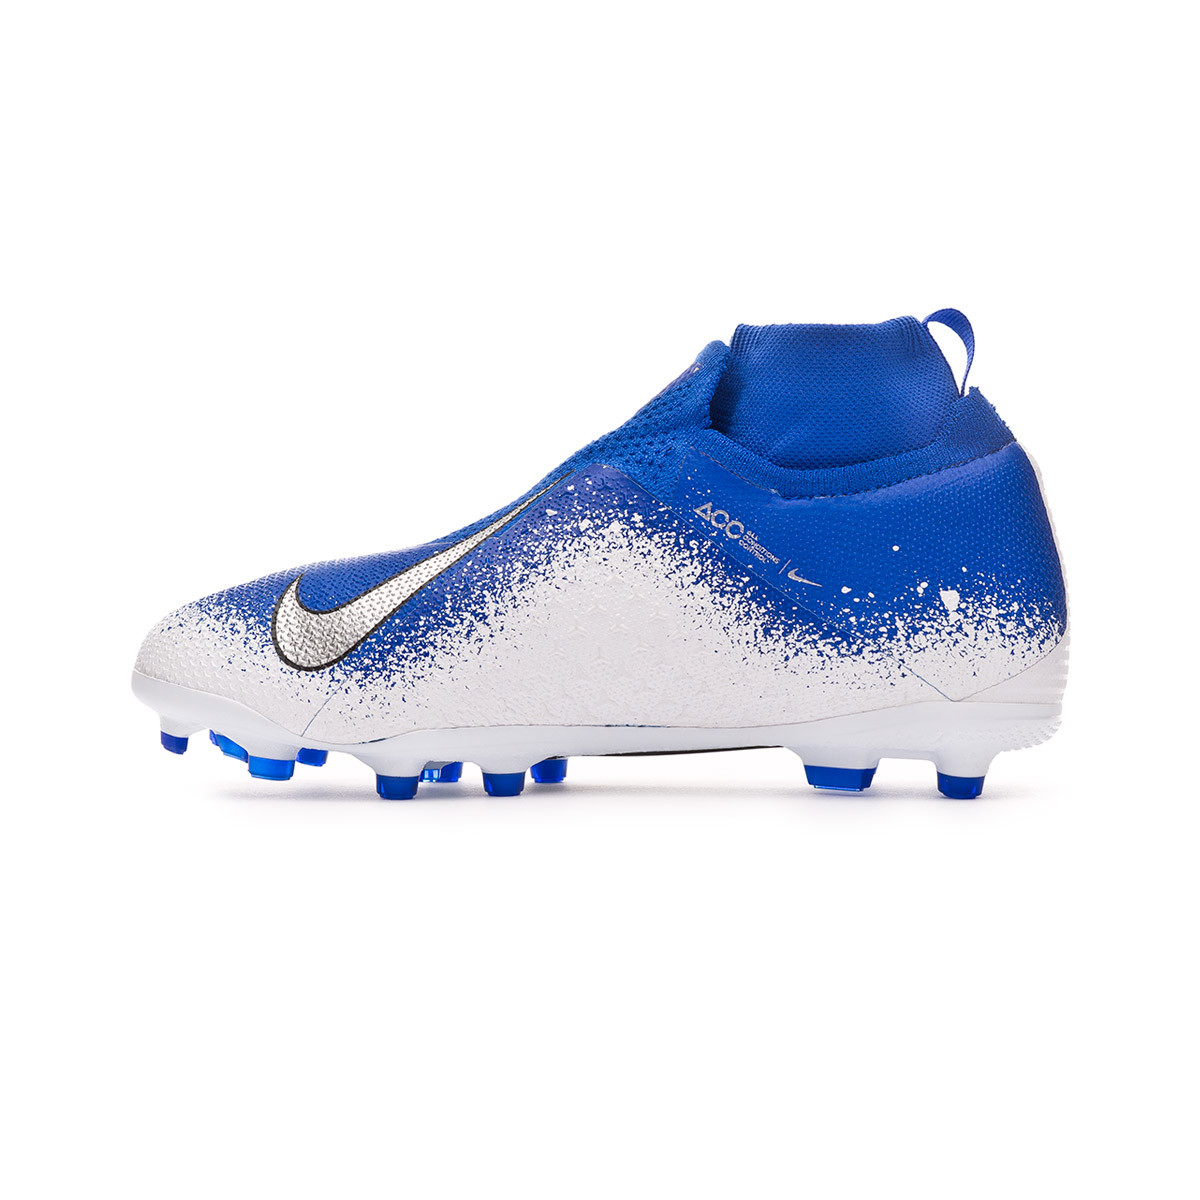 7c5ce36f5b7 Football Boots Nike Kids Phantom Vision Elite DF FG MG Racer  blue-Chrome-White - Football store Fútbol Emotion